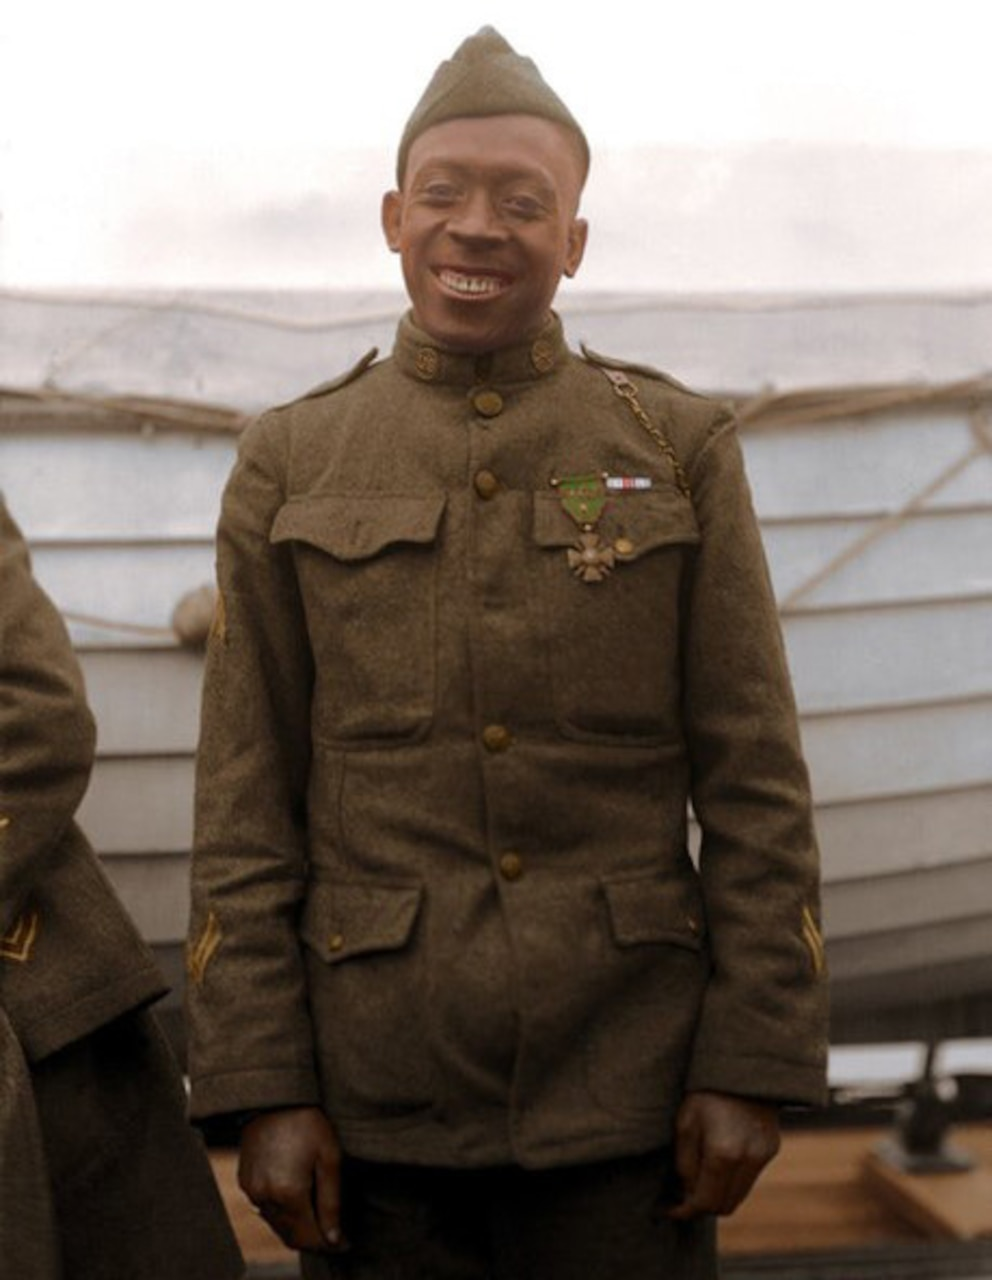 A man in a military uniform smiles for the camera.